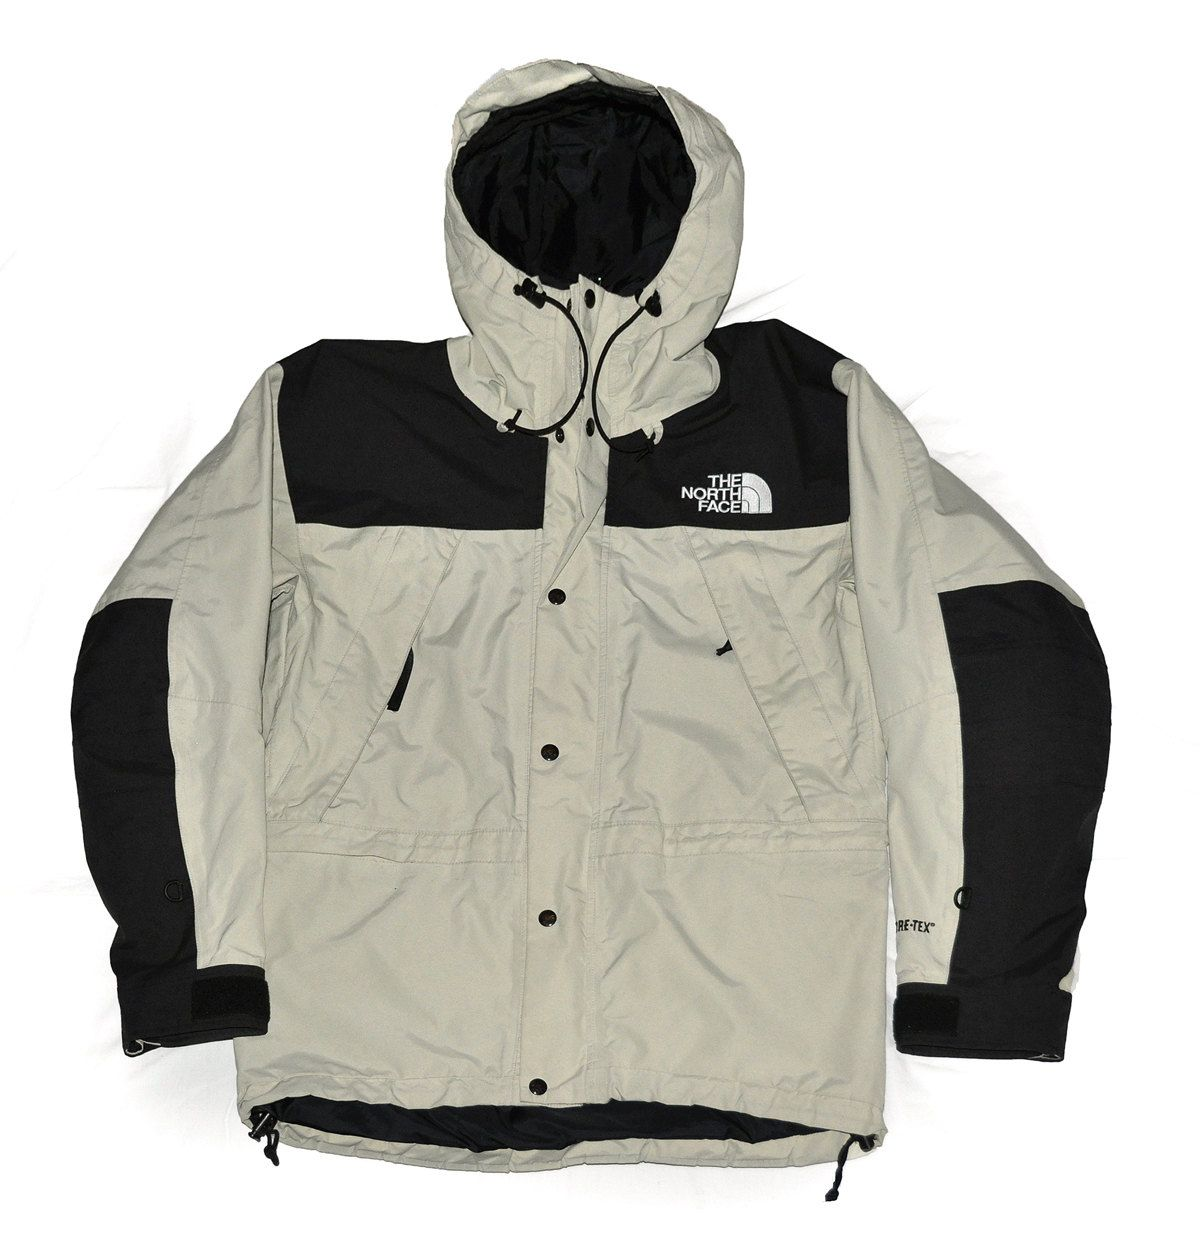 fbd140b3d509 Vintage 90s The North Face Mountain Guide Gore-Tex jacket Beige Black Size  S by VapeoVintage on Etsy